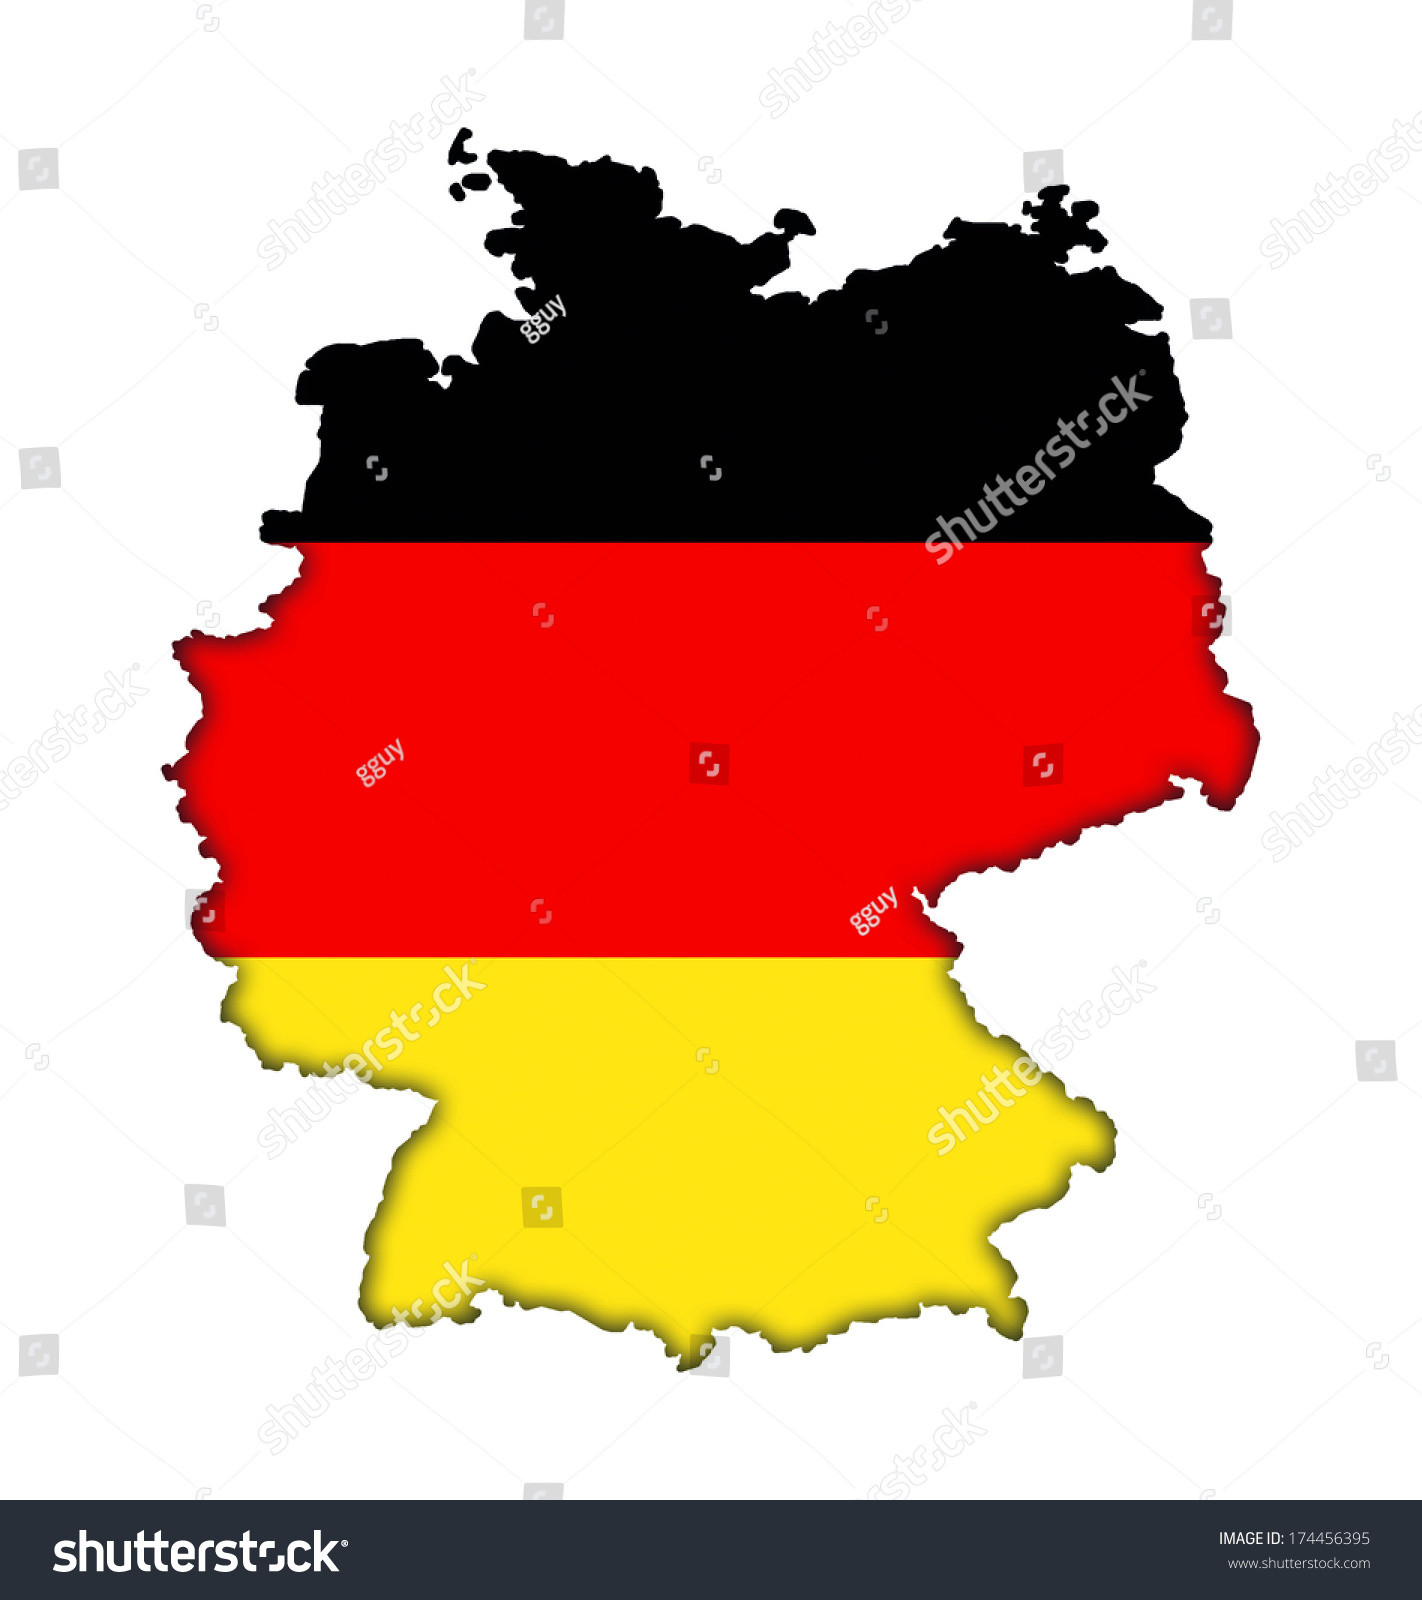 german flag banner map icon germany stock illustration 174456395